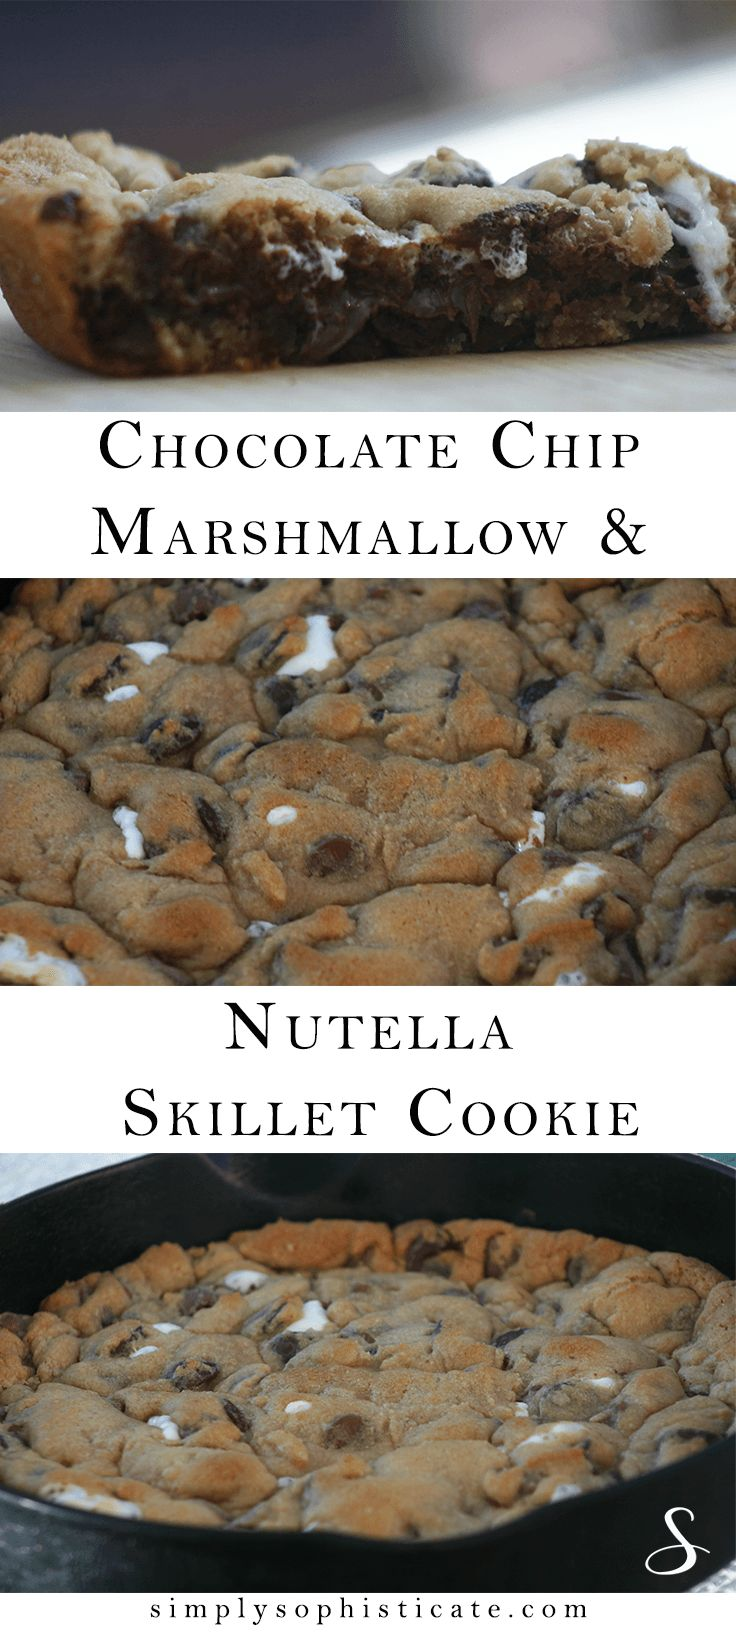 Chocolate Chip, Marshmallow & Nutella Skillet Cookie -- a family goodie! http://www.simplysophisticate.com/chocolate-chip-marshmallow-nutella-skillet-cookie/